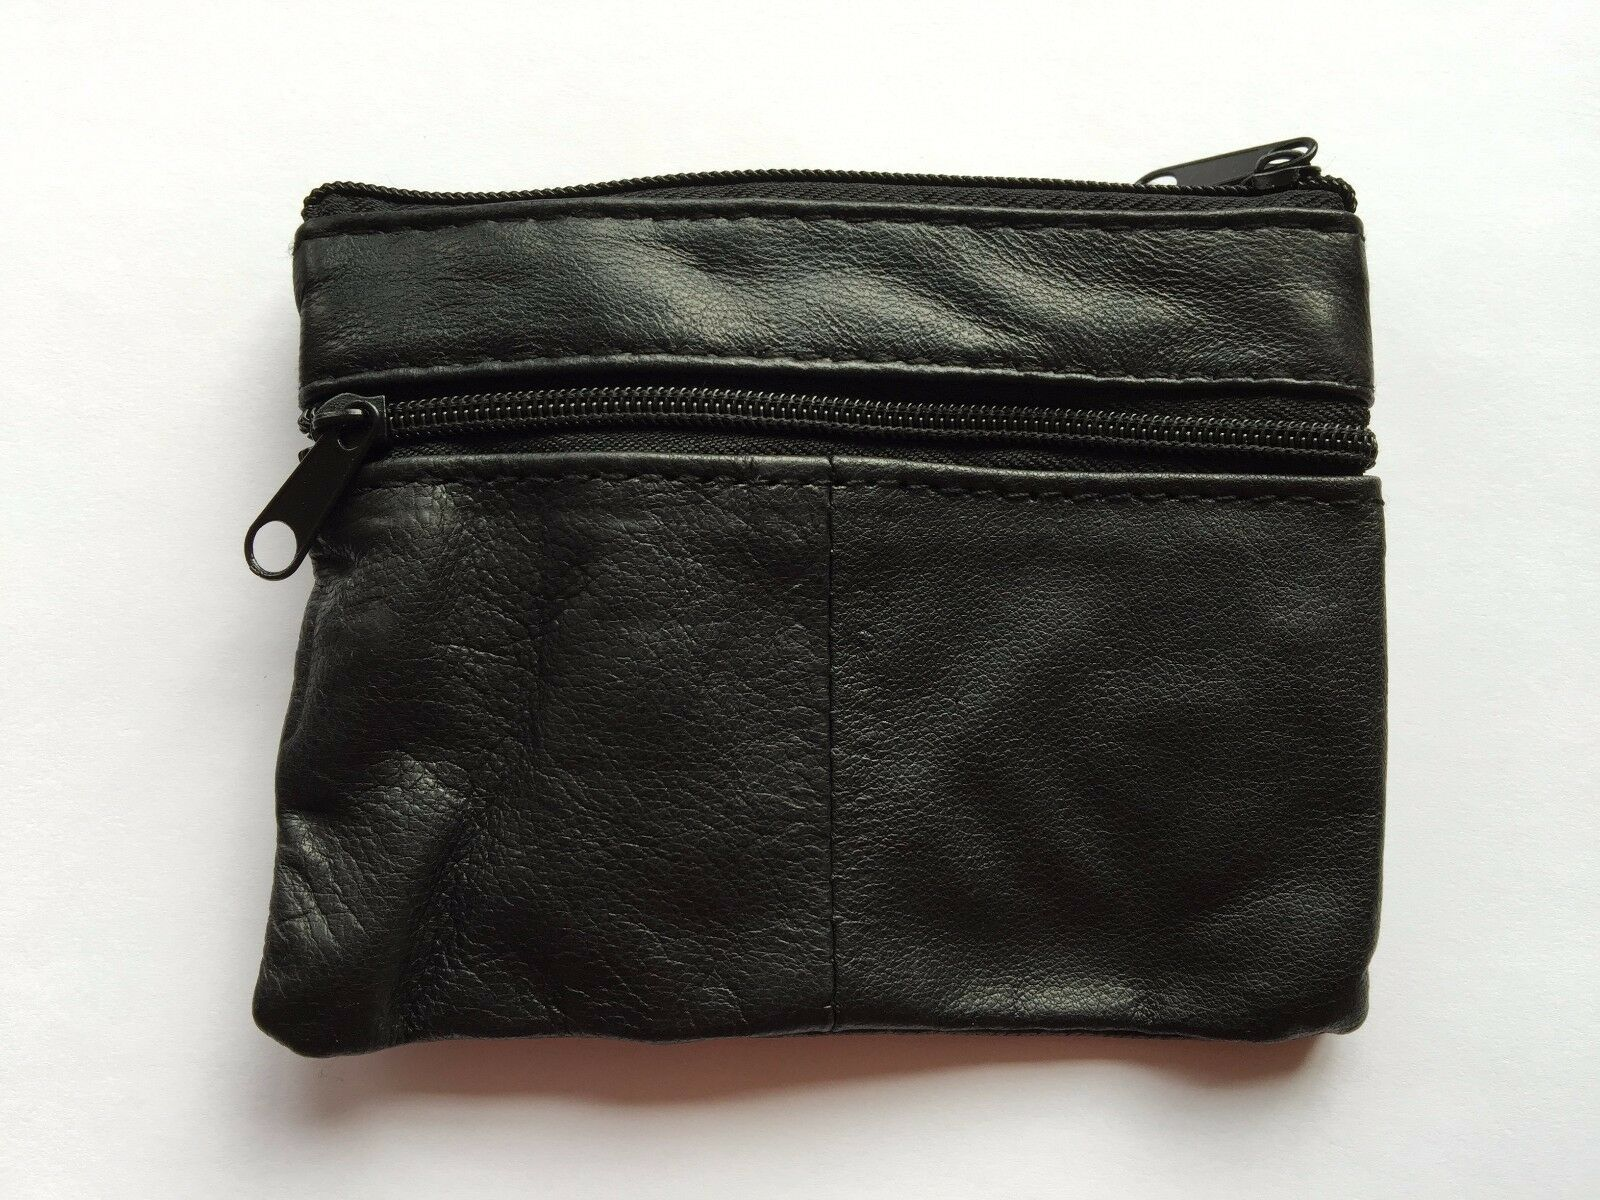 6469b637a3e Details about MENS WOMENS BOYS BLACK LEATHER ZIP COIN PURSE WALLET POUCH  KEY RING CASE MONEY